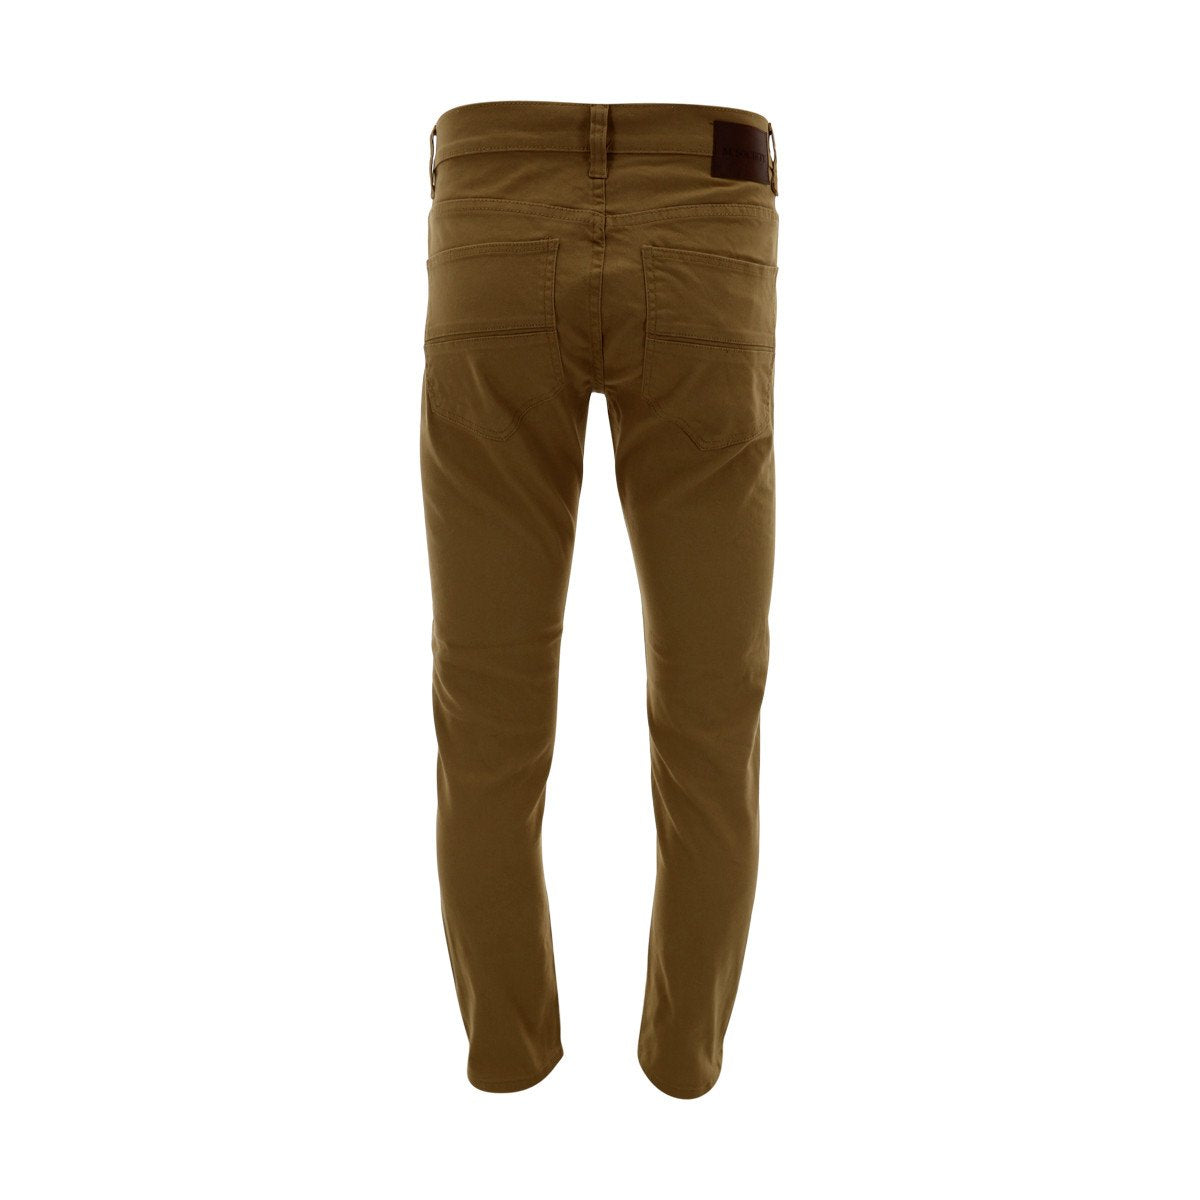 M Society - Men's Skinny Stretch Twill Jean - Wheat - V.I.M. - 2